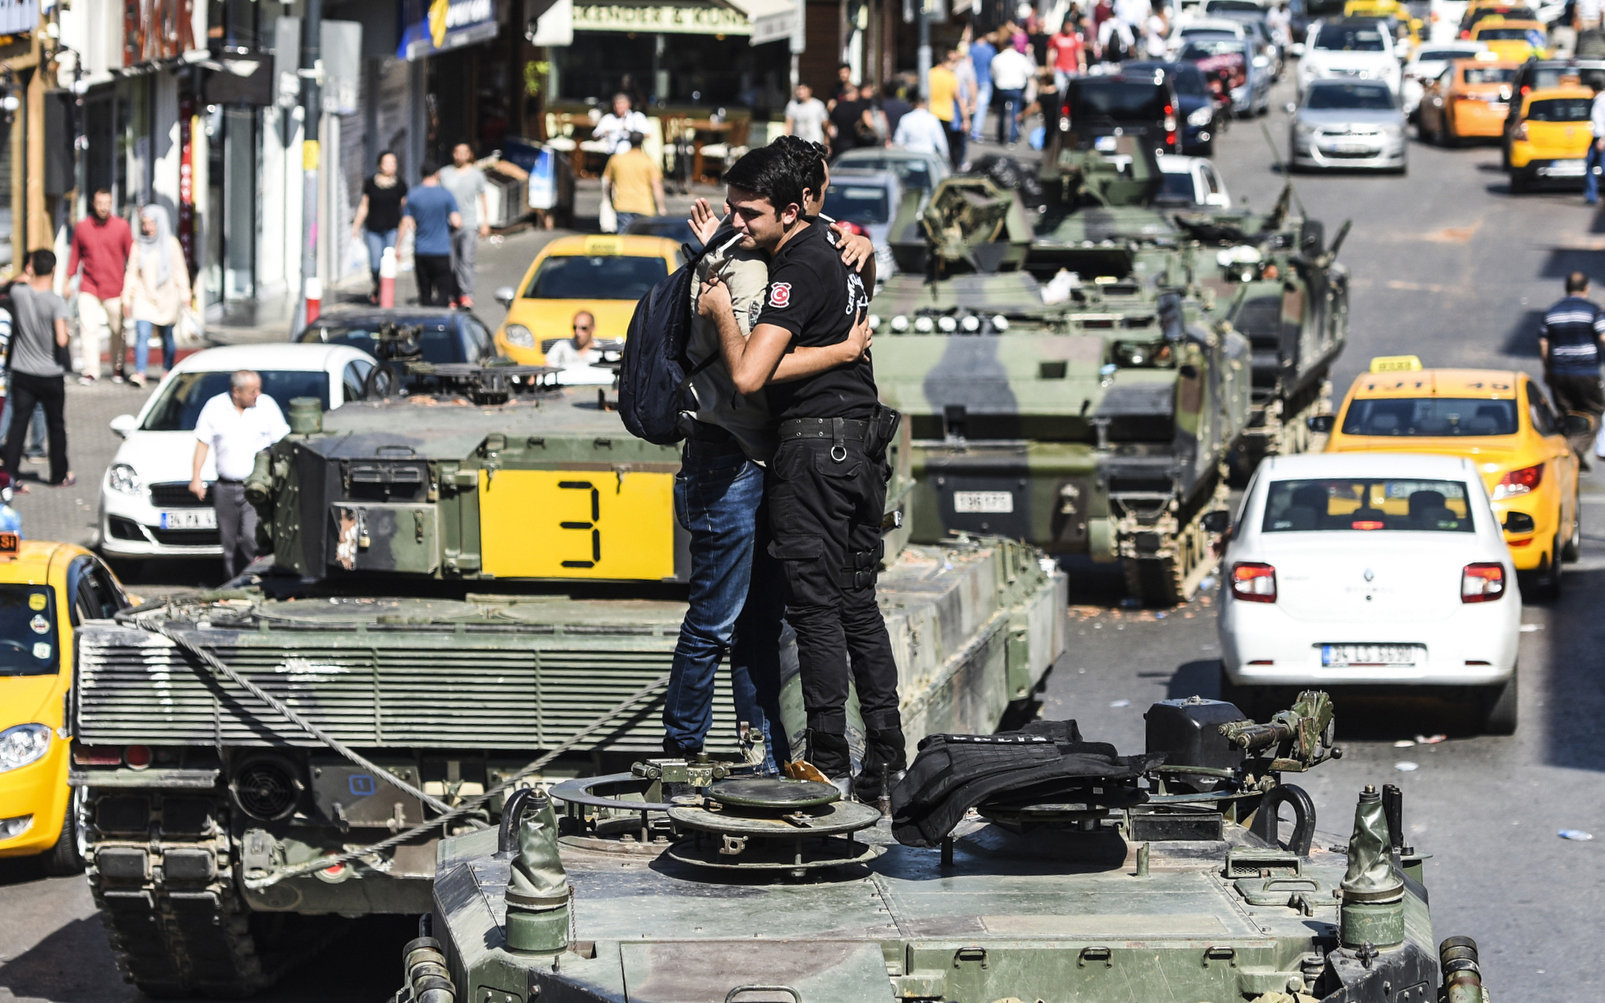 Turkish police officer (R) embrace a man on a tank after the military position was taken over at the Anatolian side at Uskudar in Istanbul on July 16, 2016